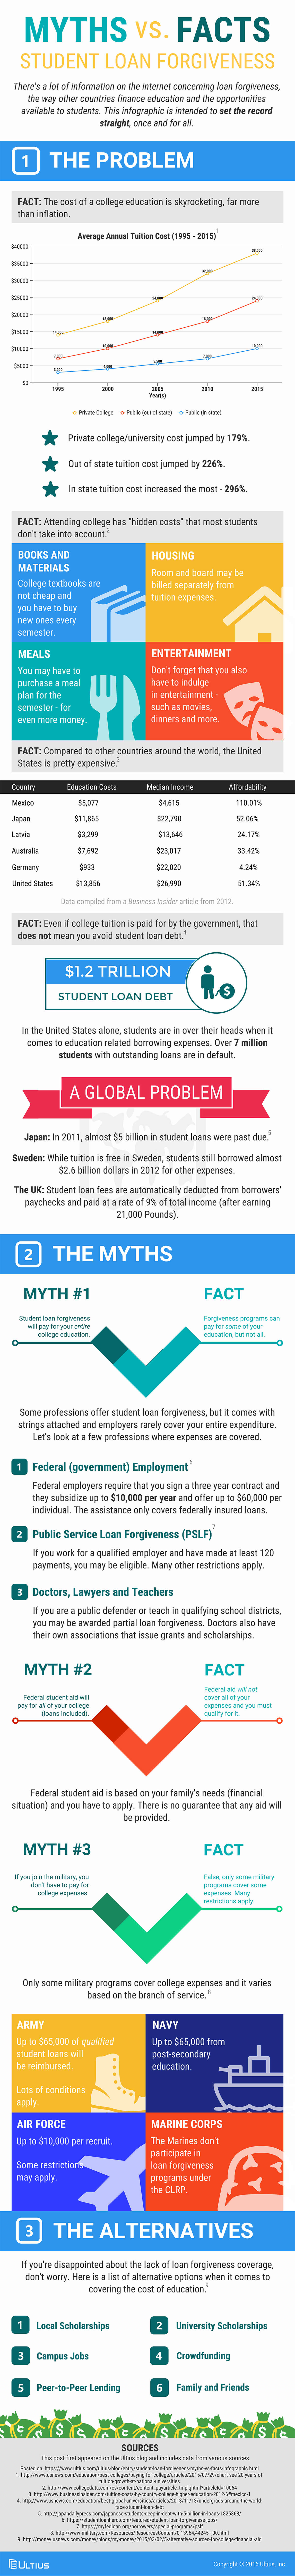 Infographic - Student Loan Forgiveness Options